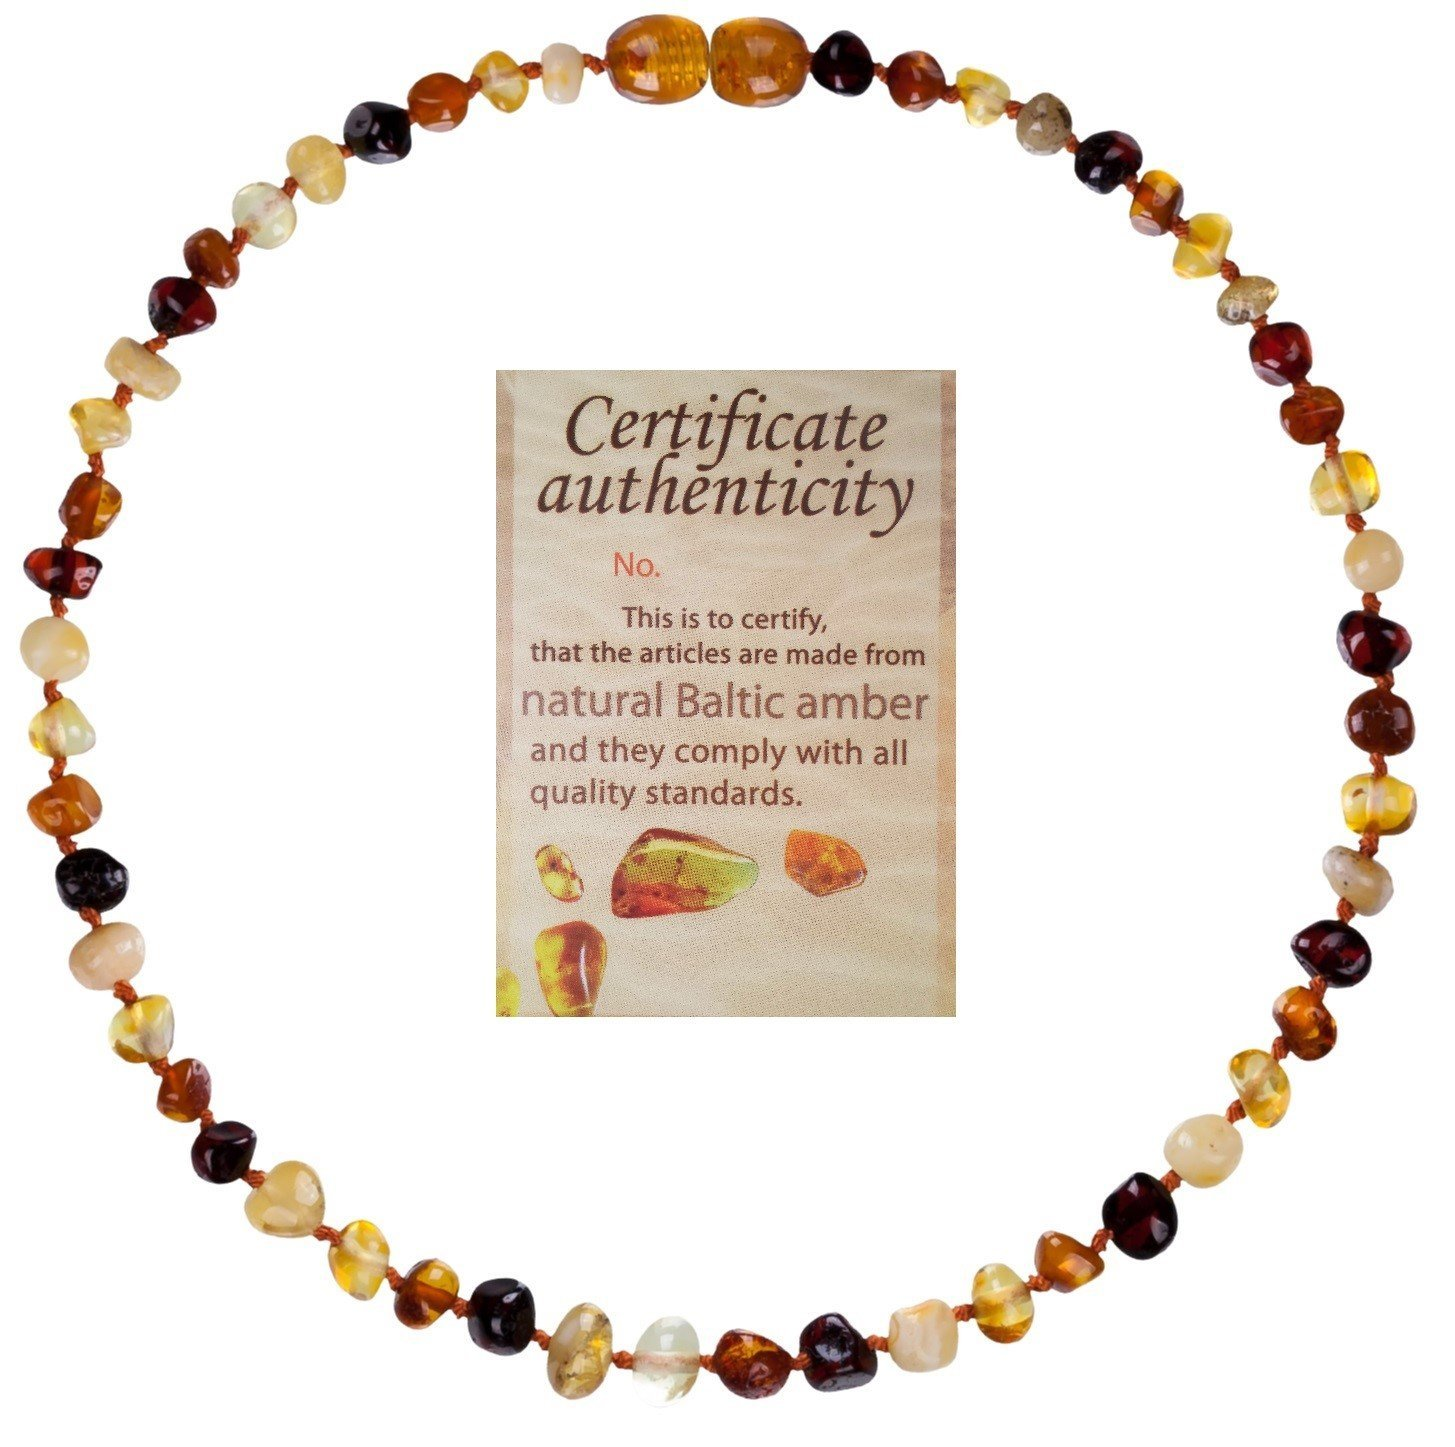 Mommy's Touch 100% Natural Amber Teething Necklace (Multi-Color) - Anti-Inflammatory & Teething Pain Reducing Properties Unisex Necklace With Twist-in Screw Clasp by Mommy's Touch